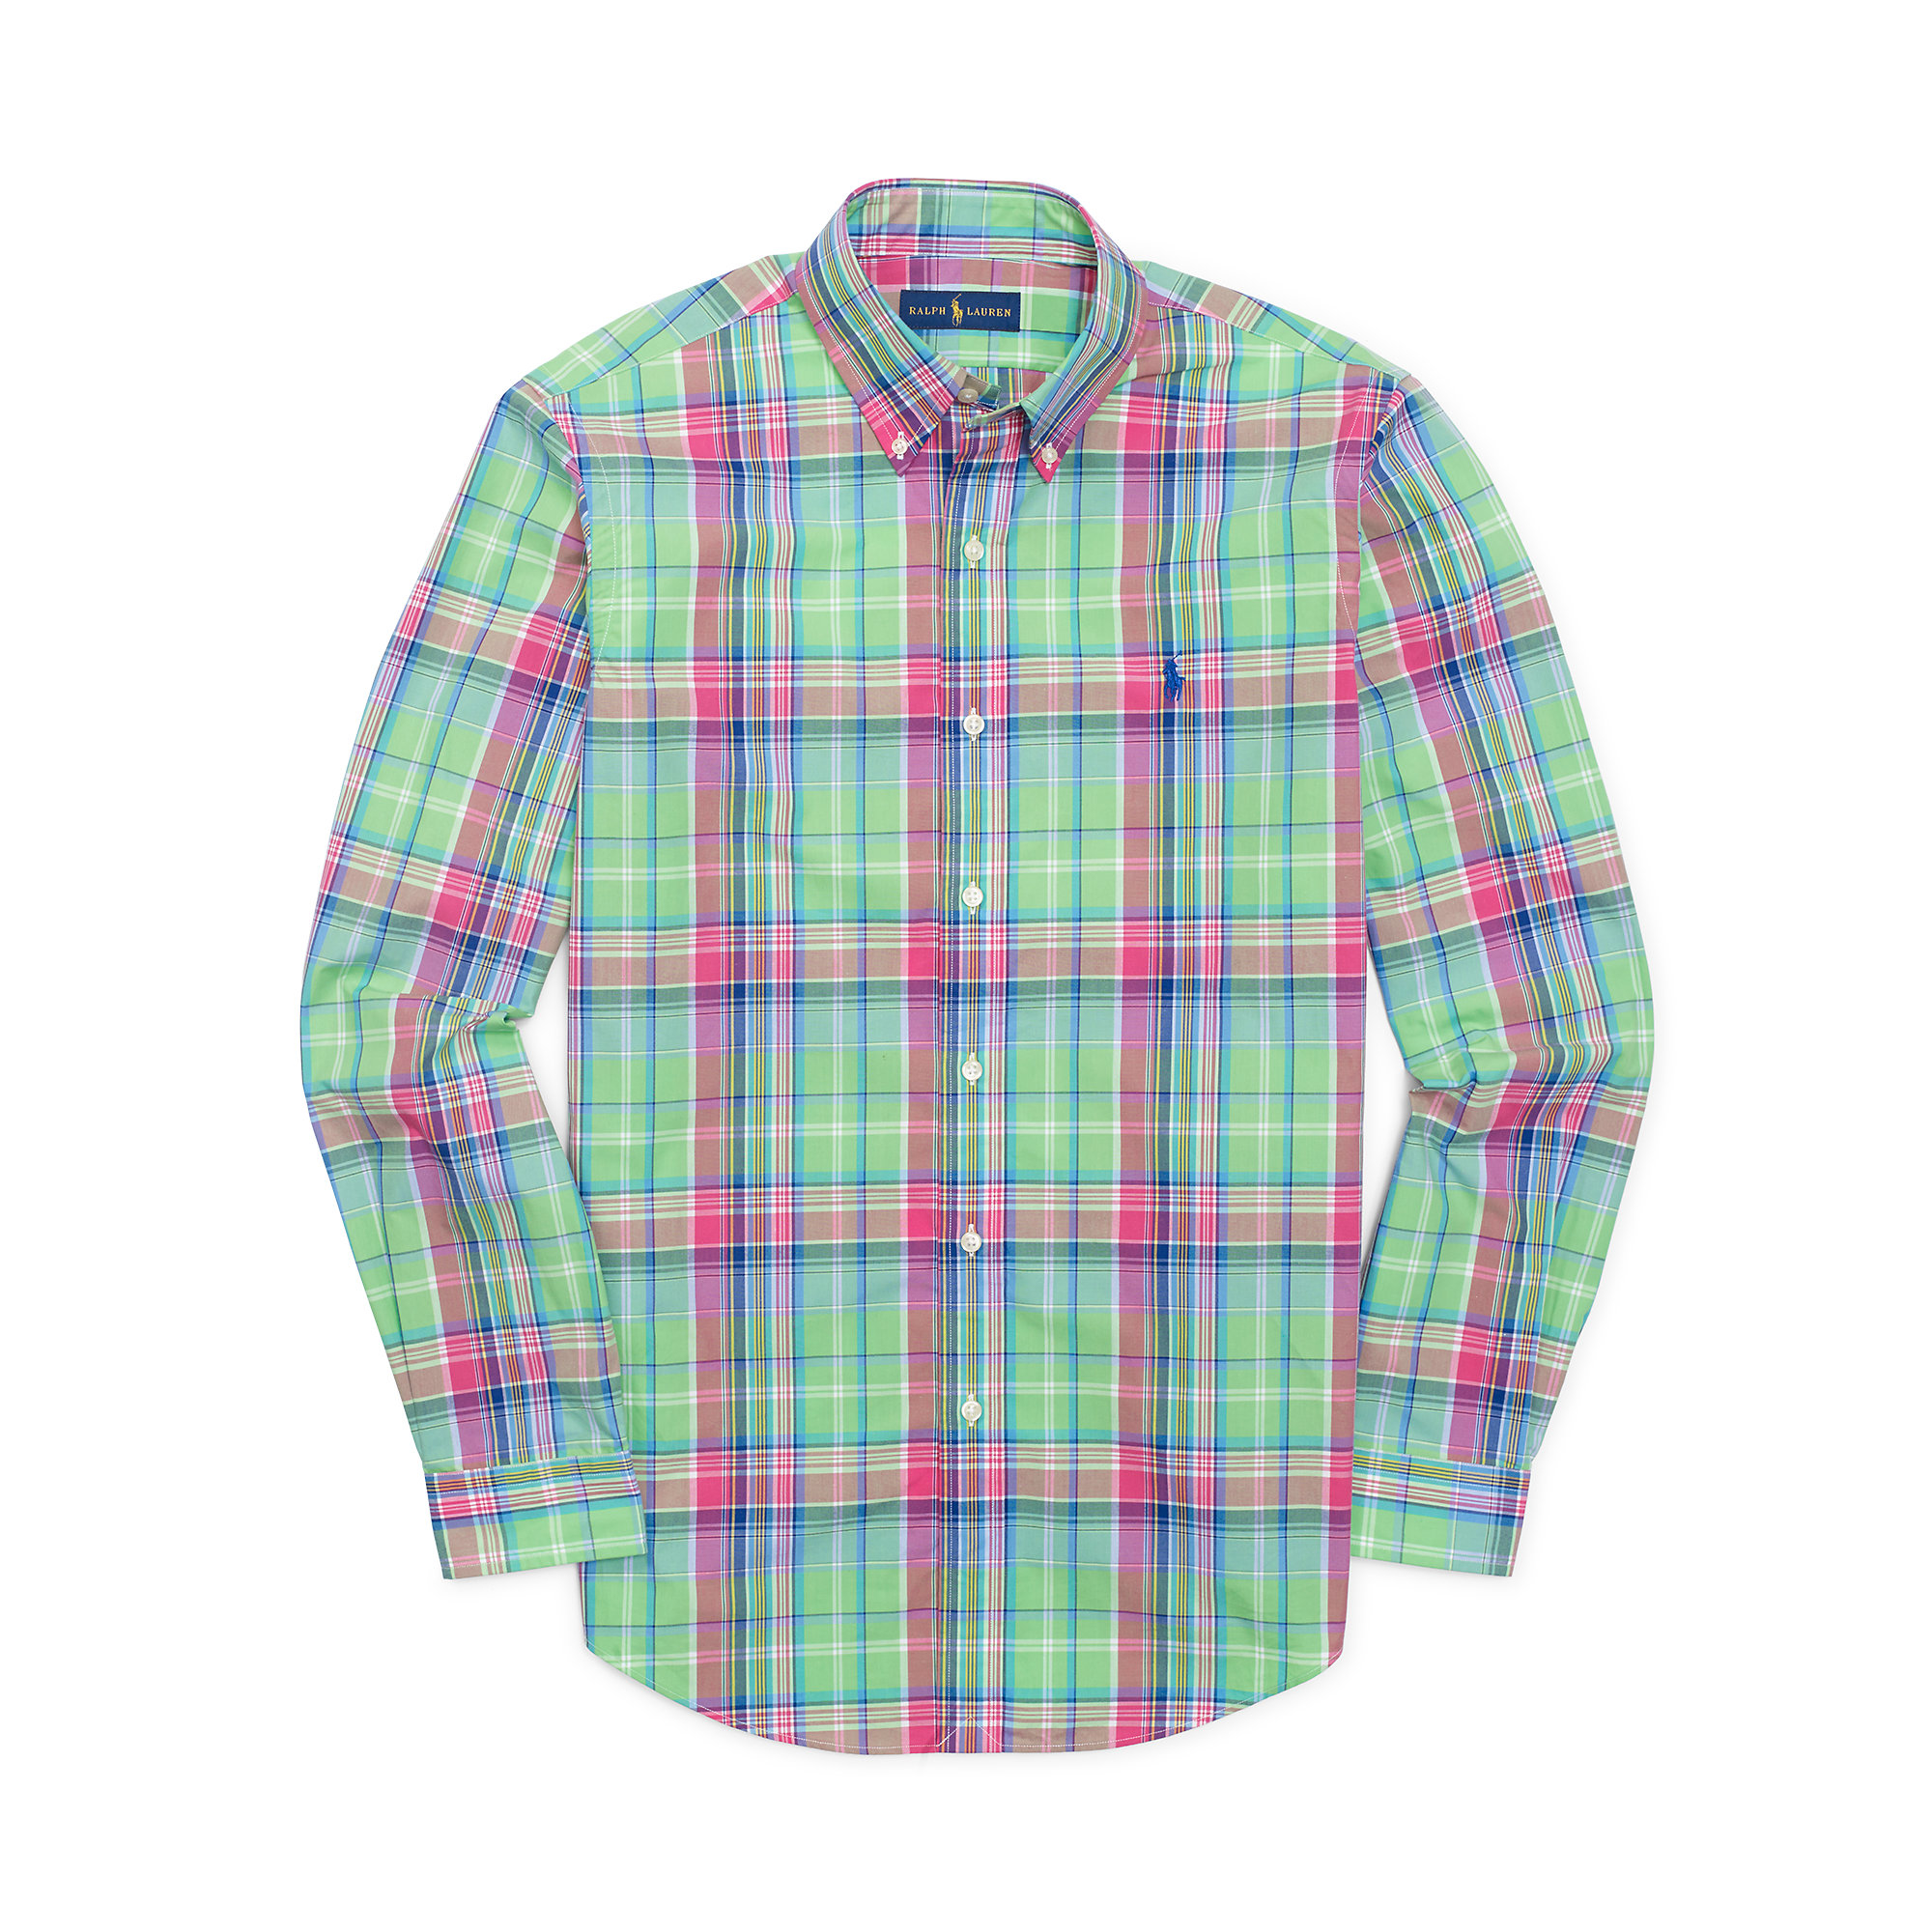 For Men Shirt Polo Ralph Plaid Lauren Multicolor Cotton Poplin 1lJcFK3T